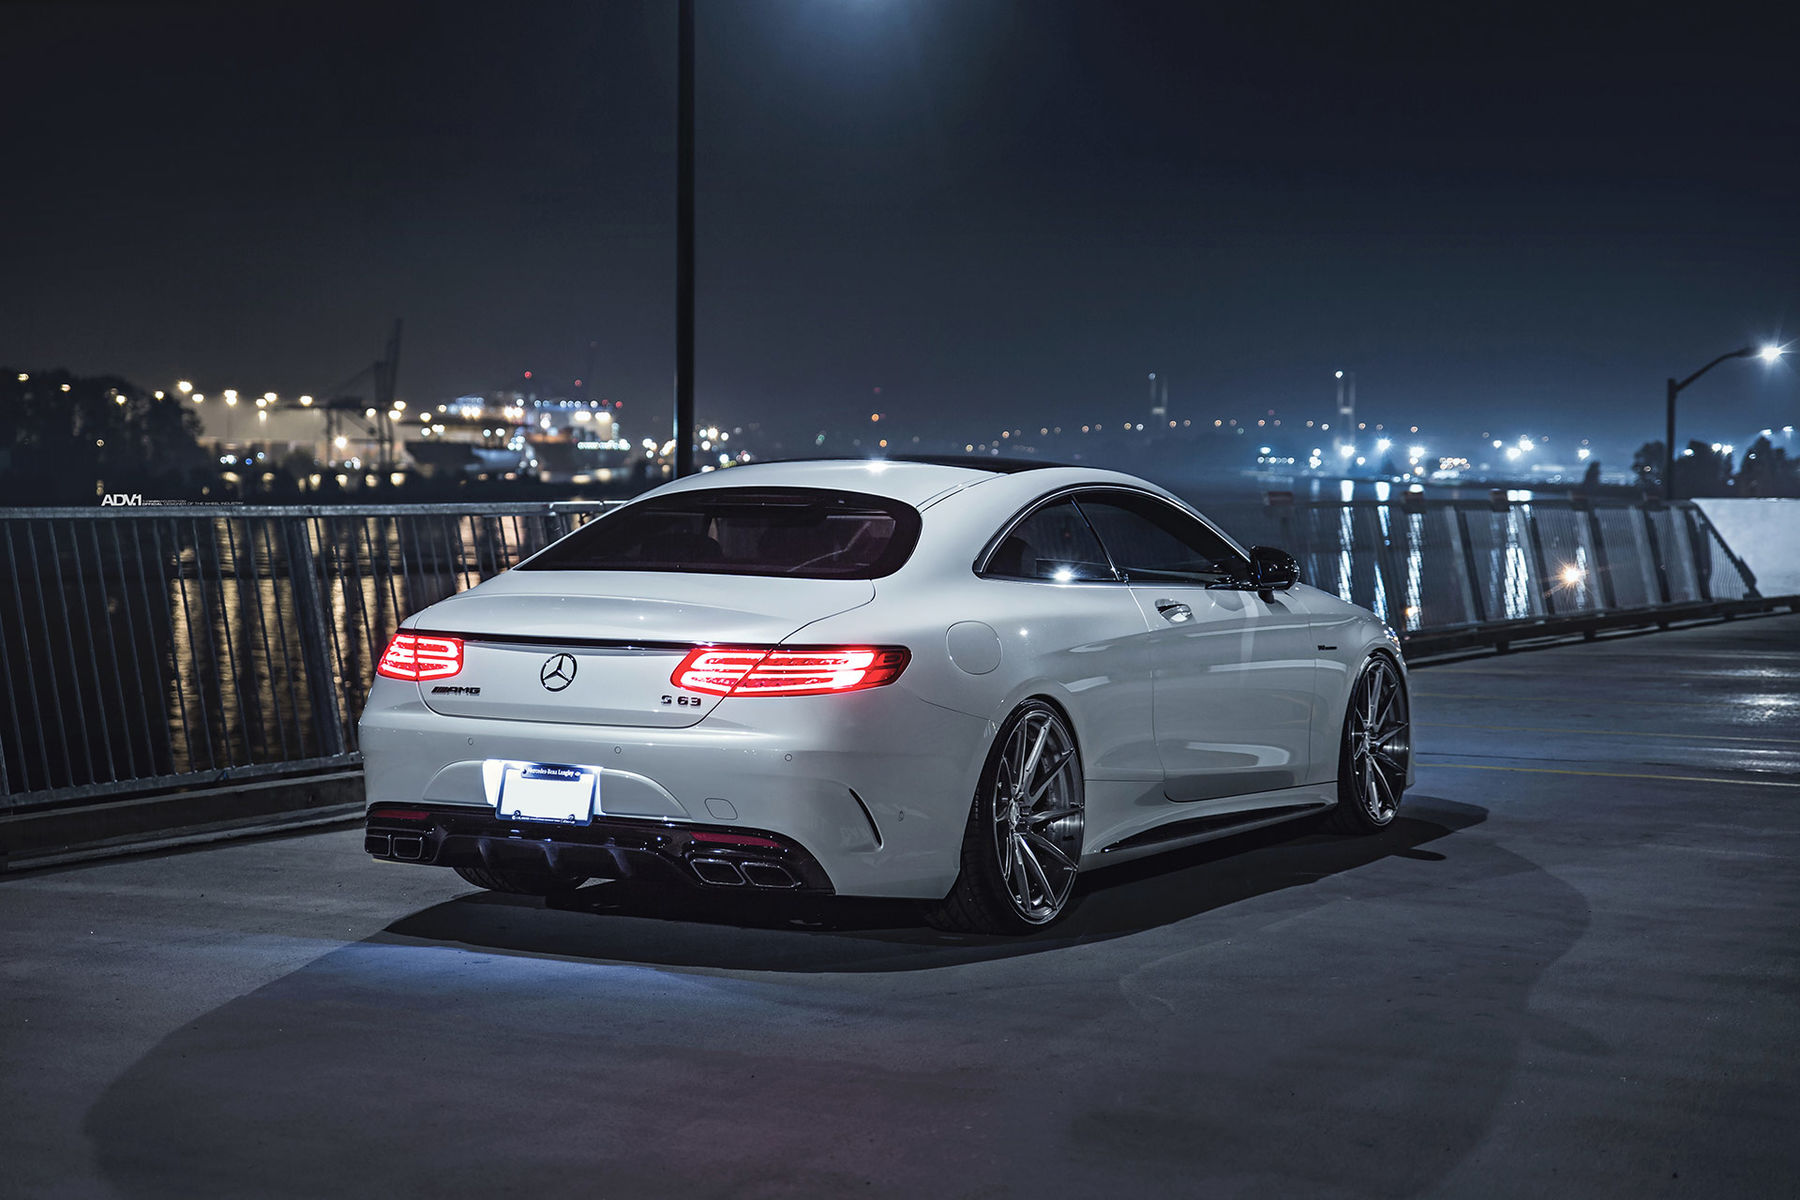 Mercedes-Benz S-Class | Mercedes S63 AMG Coupe - ADV.1 ADV10R M.V2 CS Series Directional Wheels